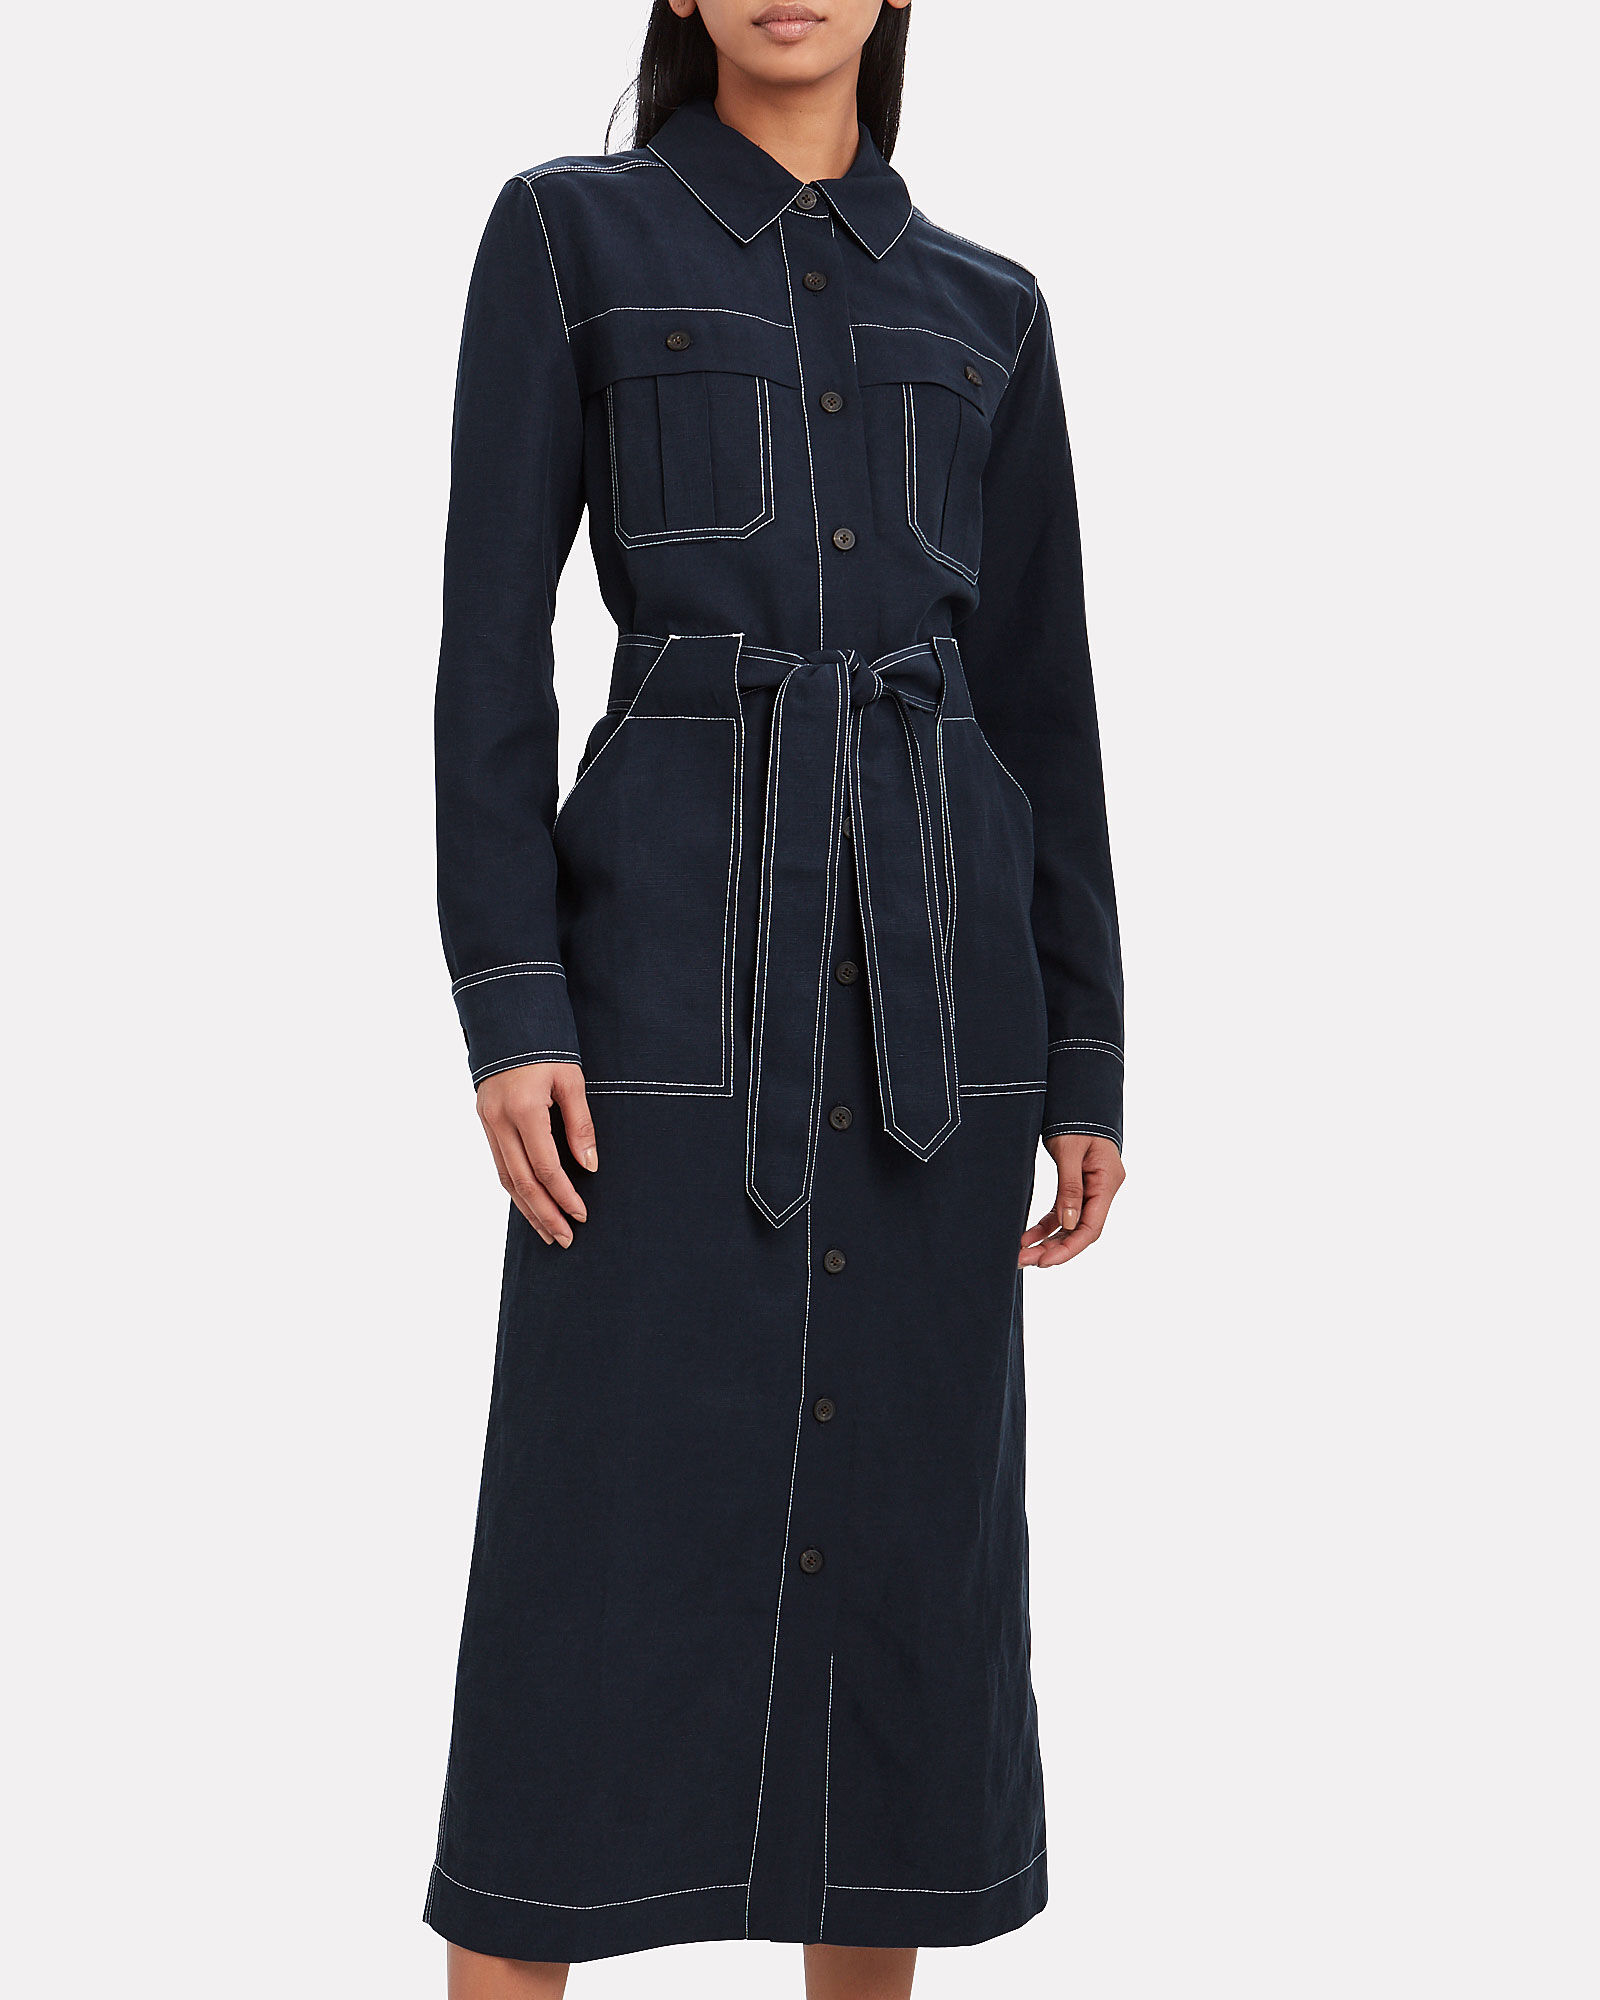 Juno Linen-Blend Shirt Dress, NAVY, hi-res